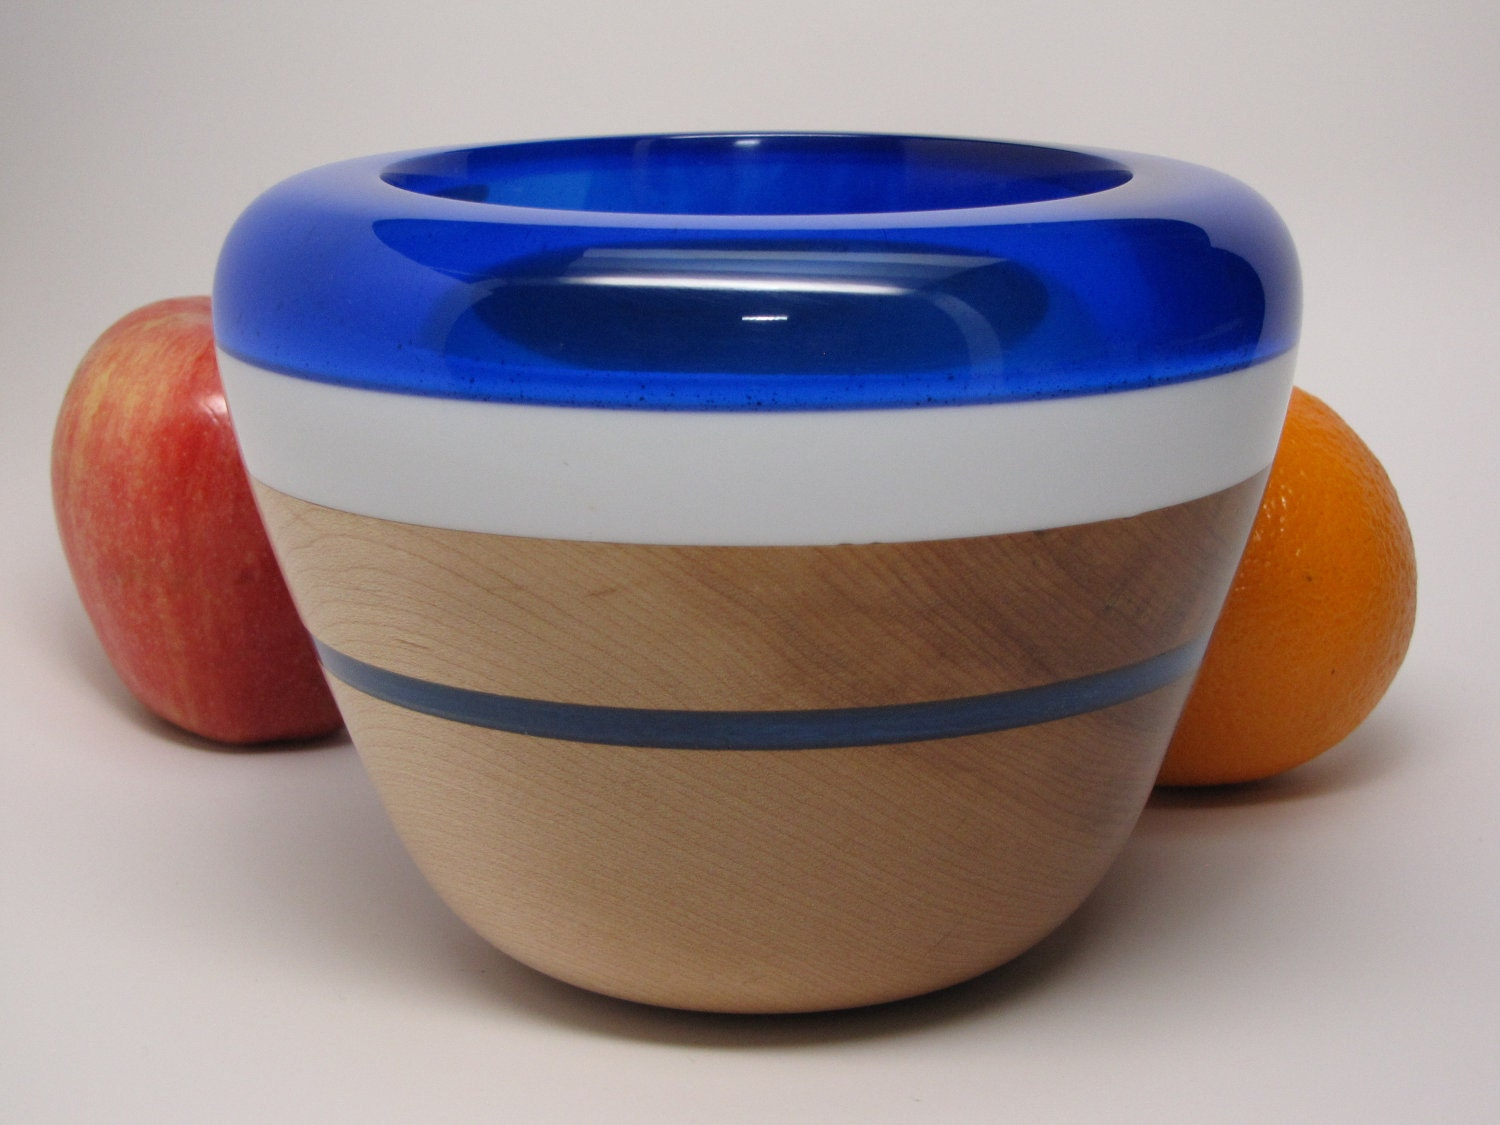 Hand Crafted Hard Maple Bowl with a Clear Dark Blue and Lite Blue Resin Lip